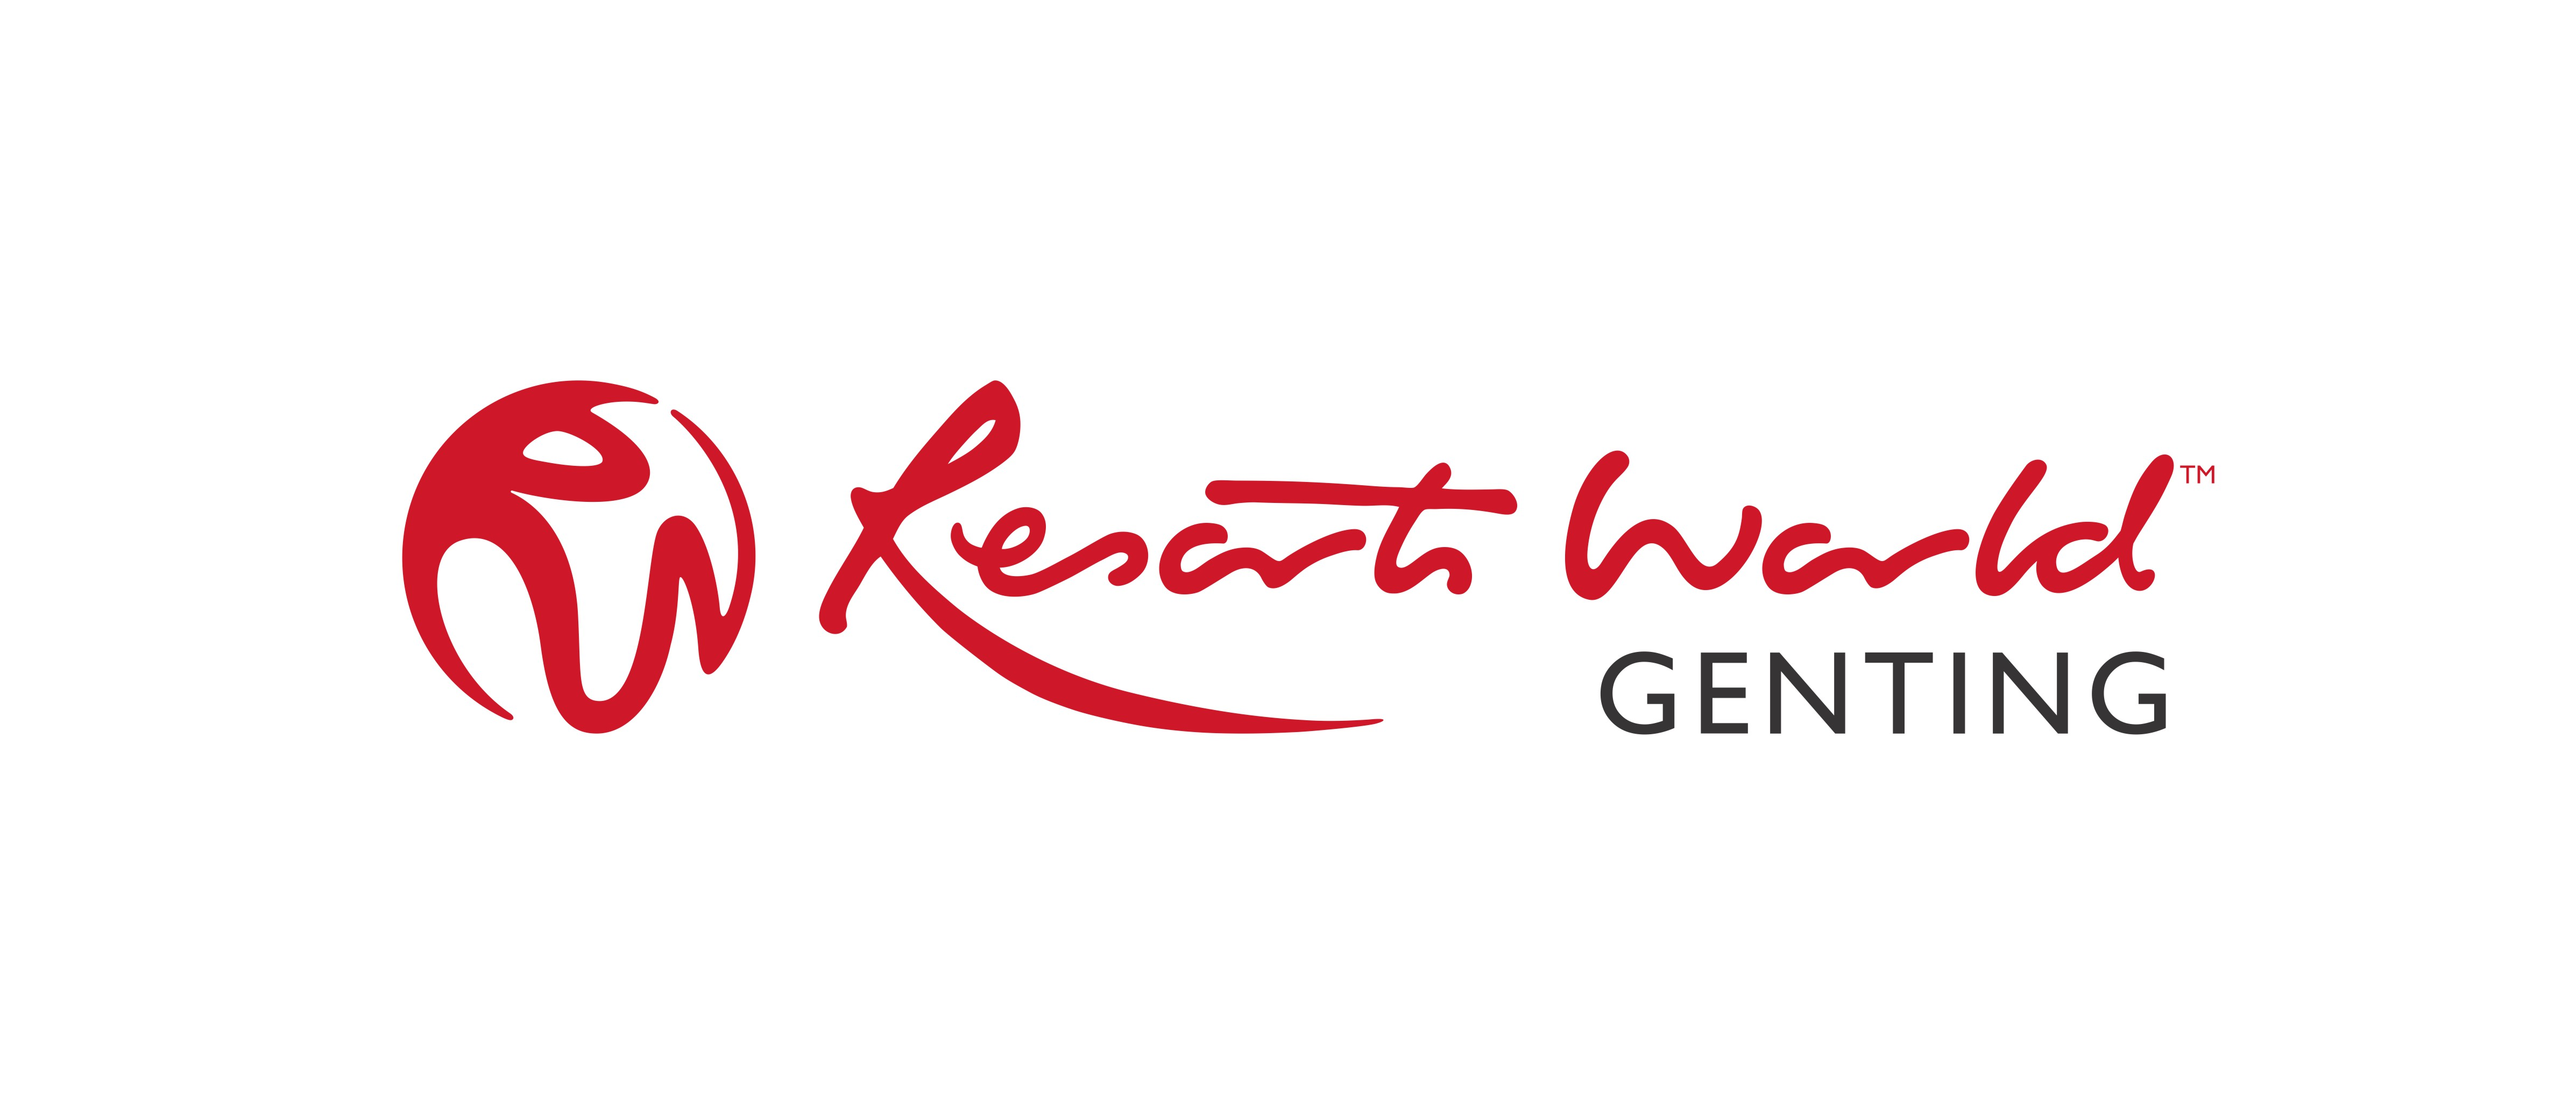 Resorts-World-Genting-Official-Photo-Logo